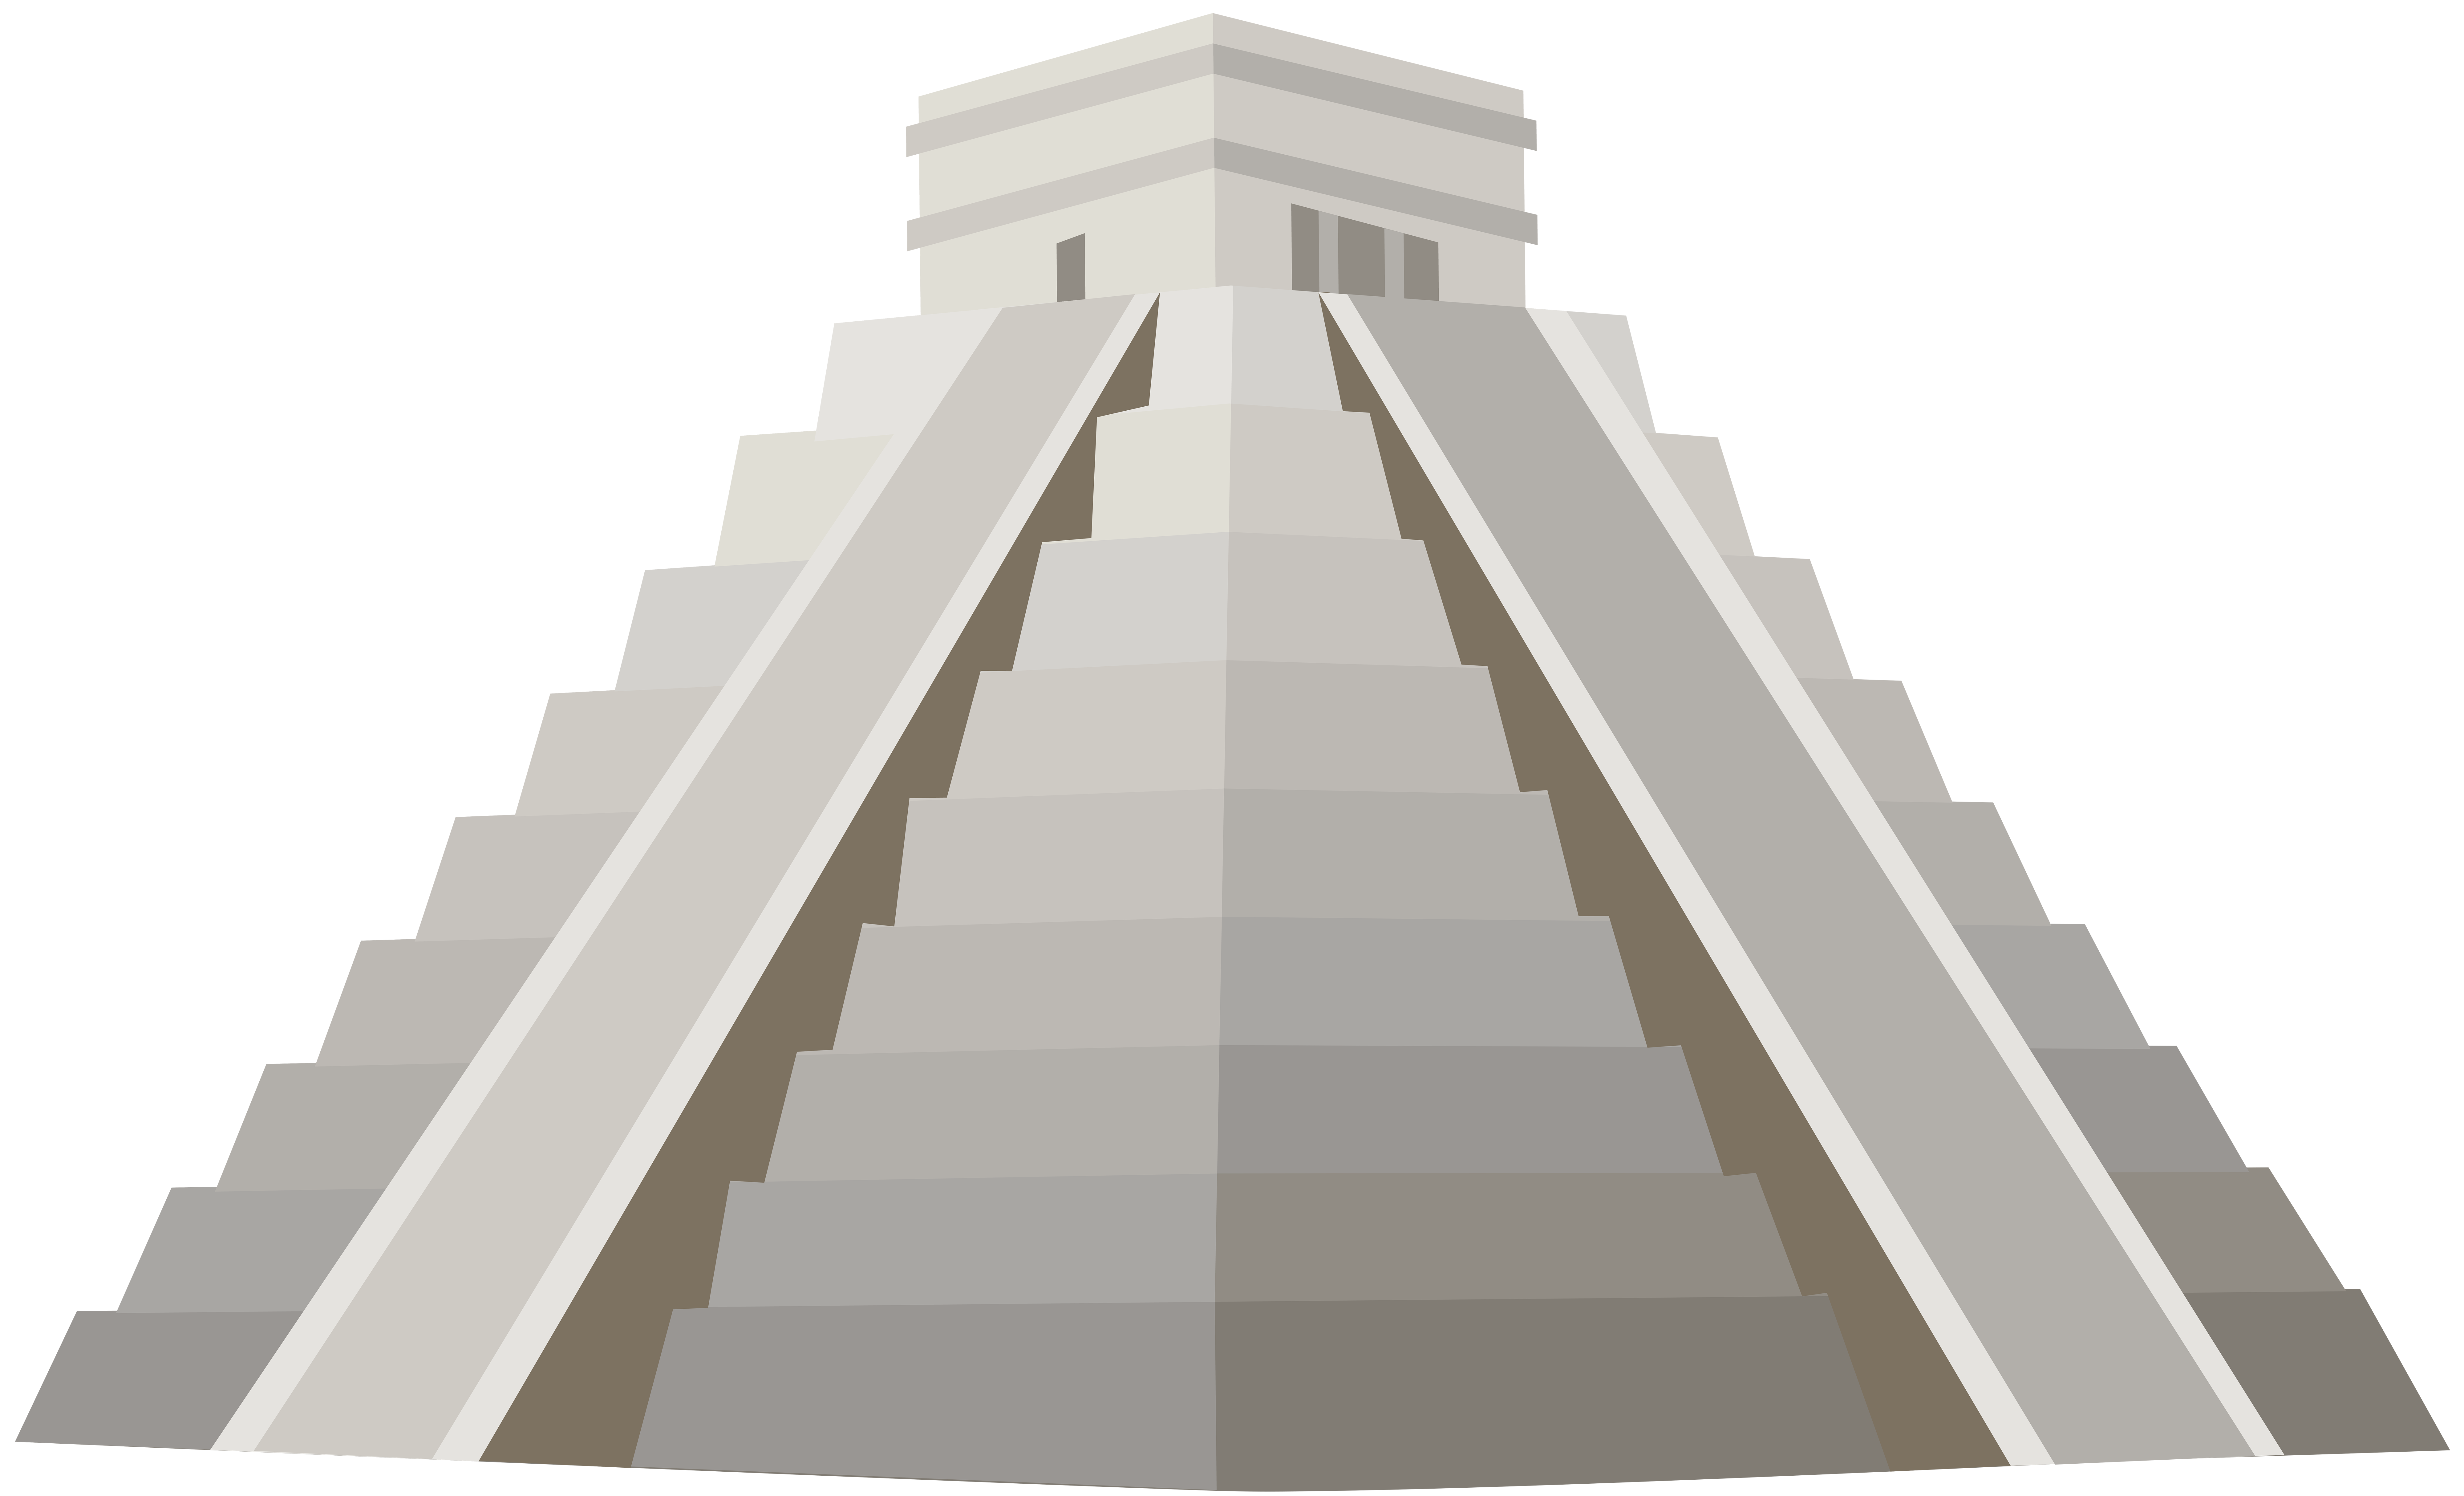 Pyramid with sun clipart picture black and white download Pyramid of Kukulcan PNG Clip Art - Best WEB Clipart picture black and white download